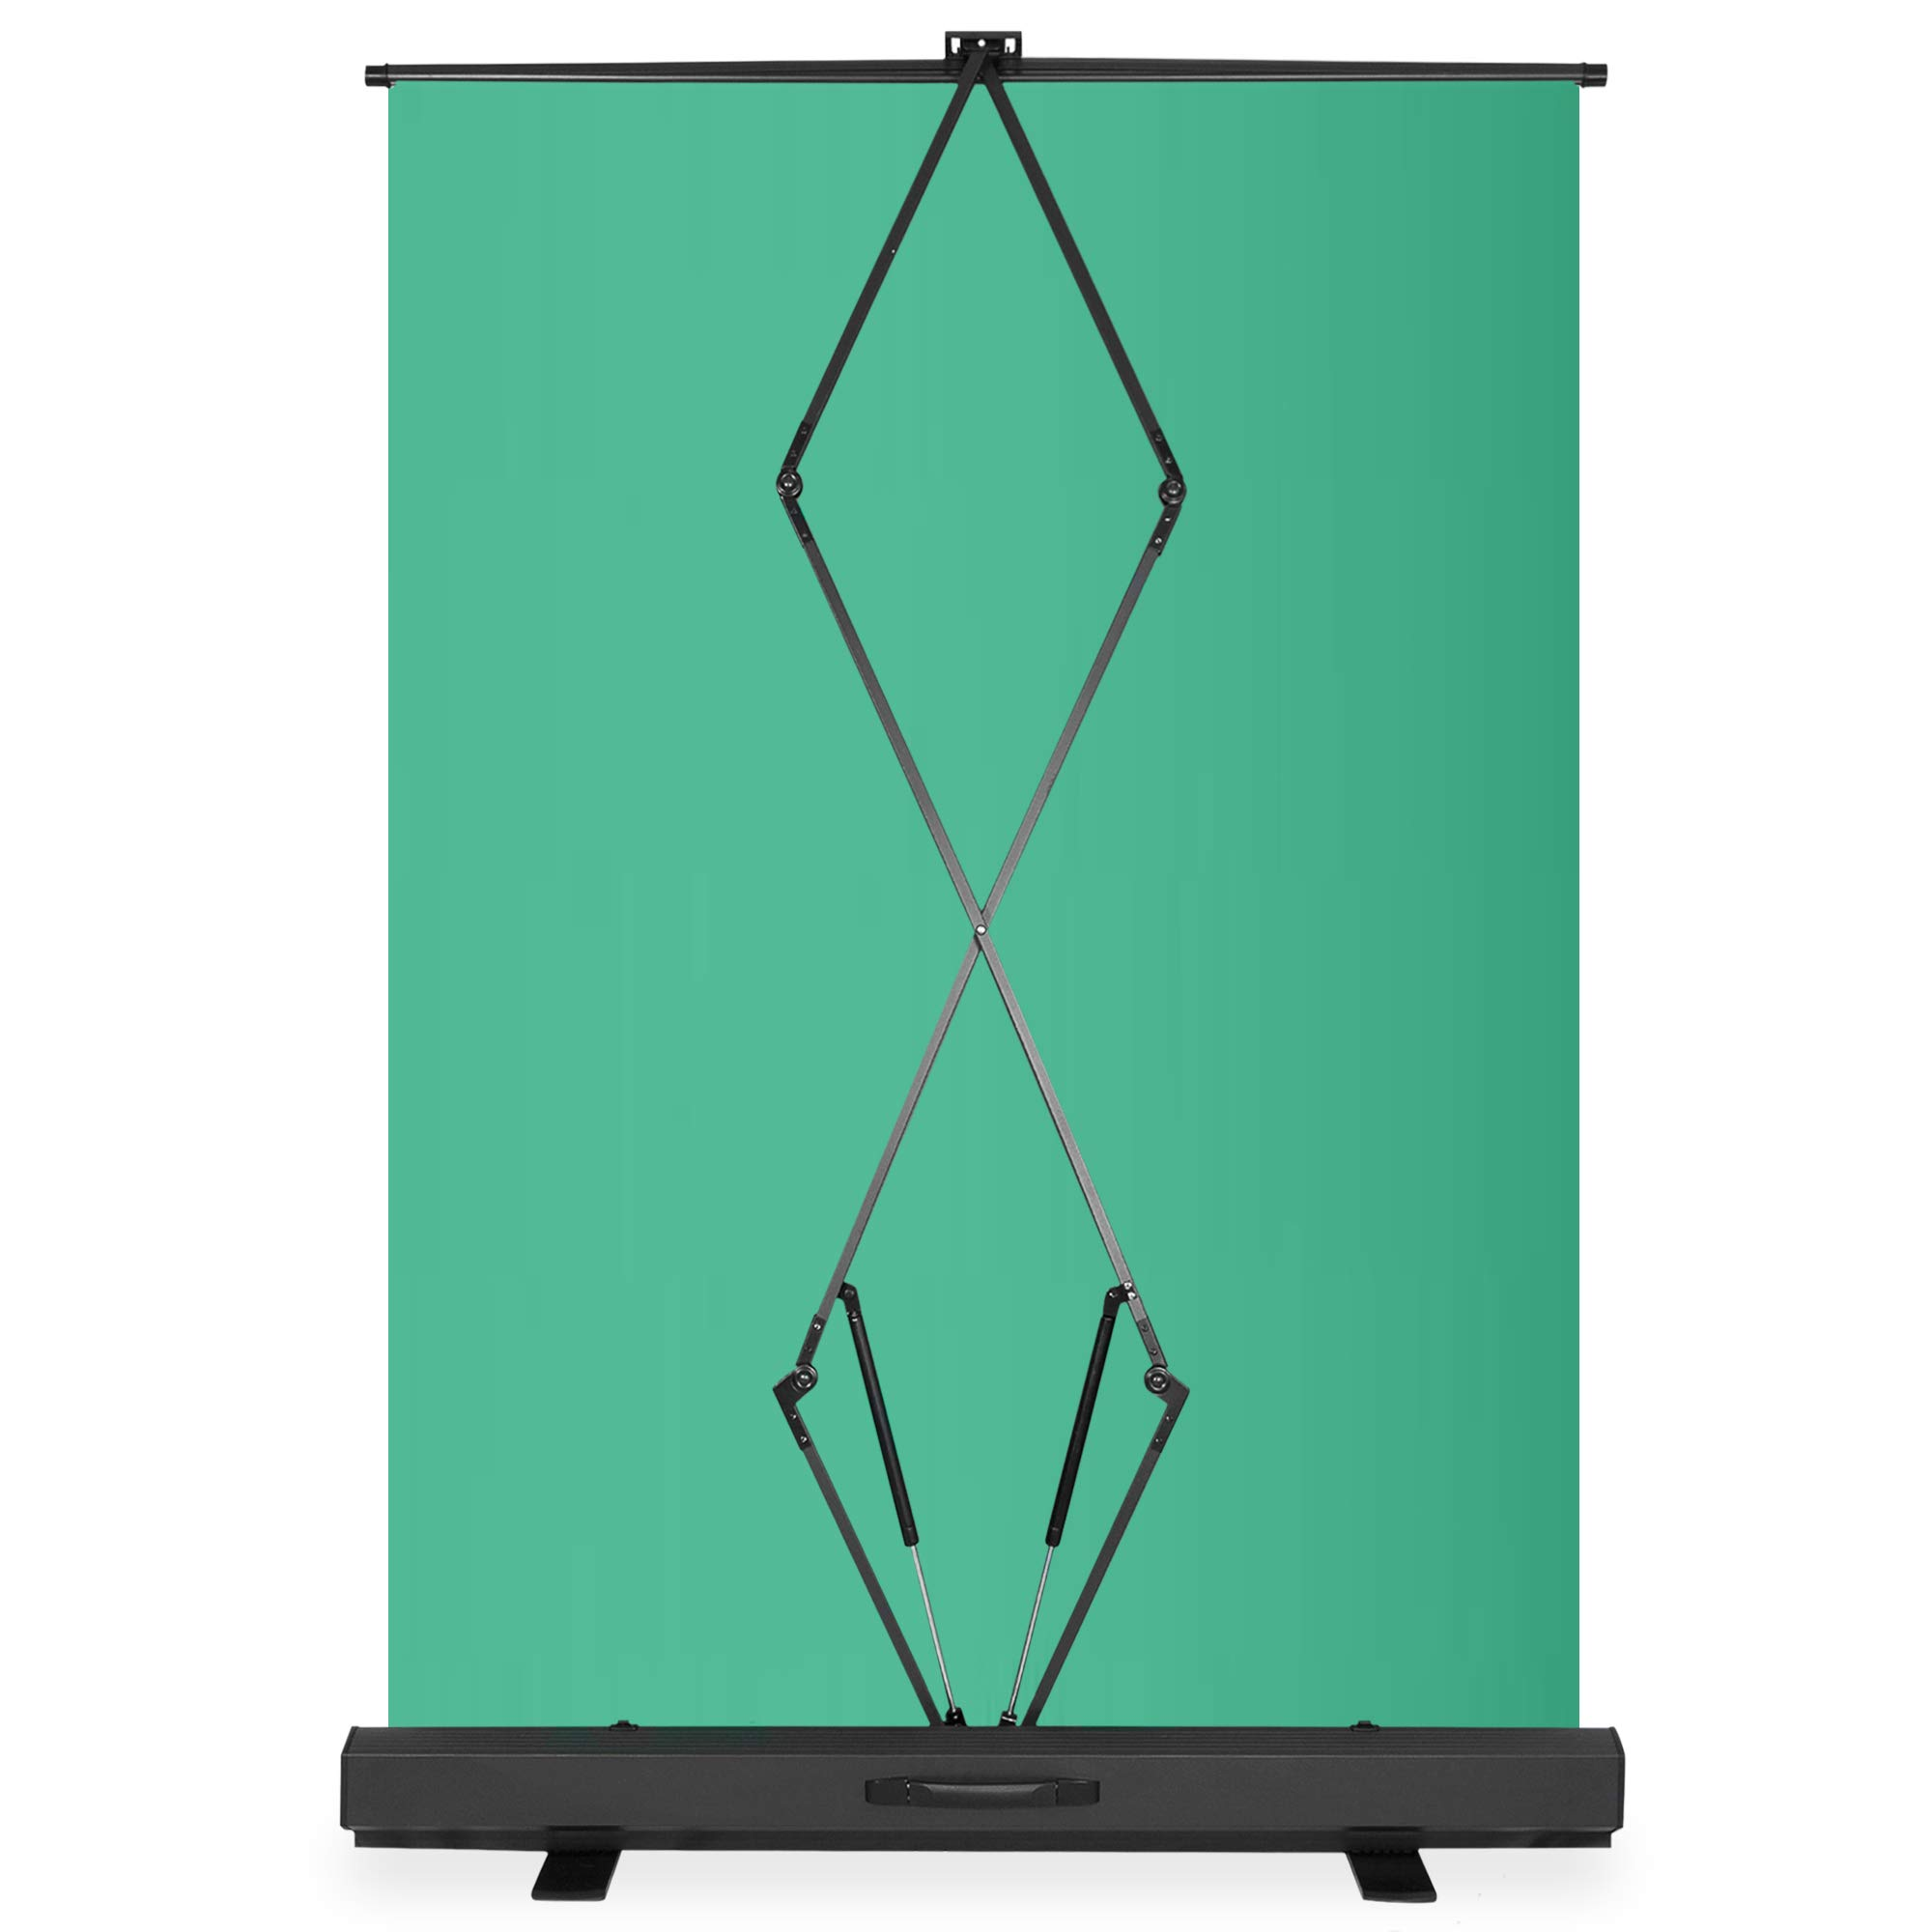 KHOMO GEAR Jumbo Size 55'' x 82'' Green Screen Collapsible Pull-Up Extra Large Streaming Portable Backdrop Setup with Auto-Locking Frame by KHOMO GEAR (Image #3)